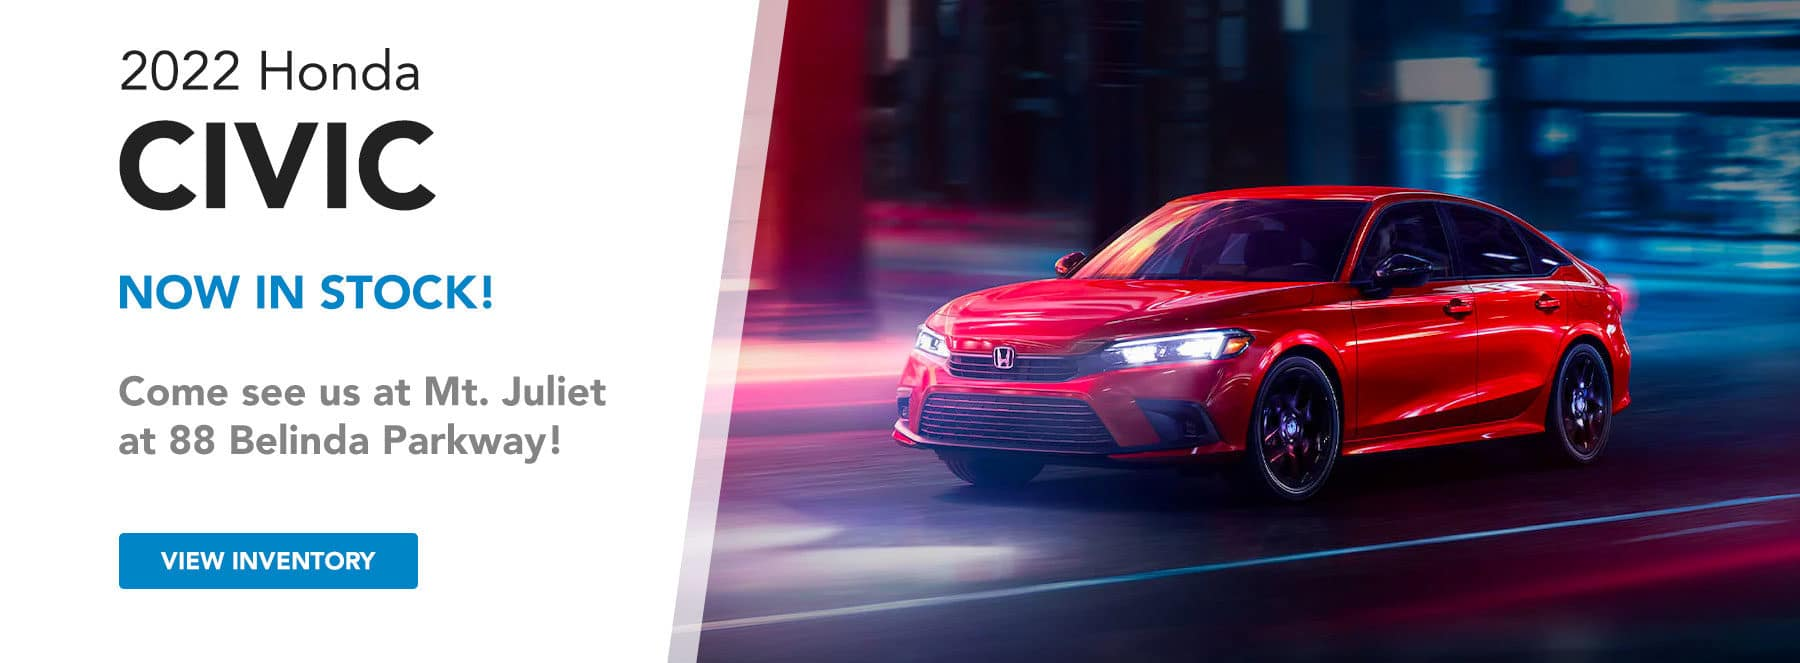 2022 Civics Now in Stock! Come see us at Mt. Juliet at 88 Belinda Parkway!